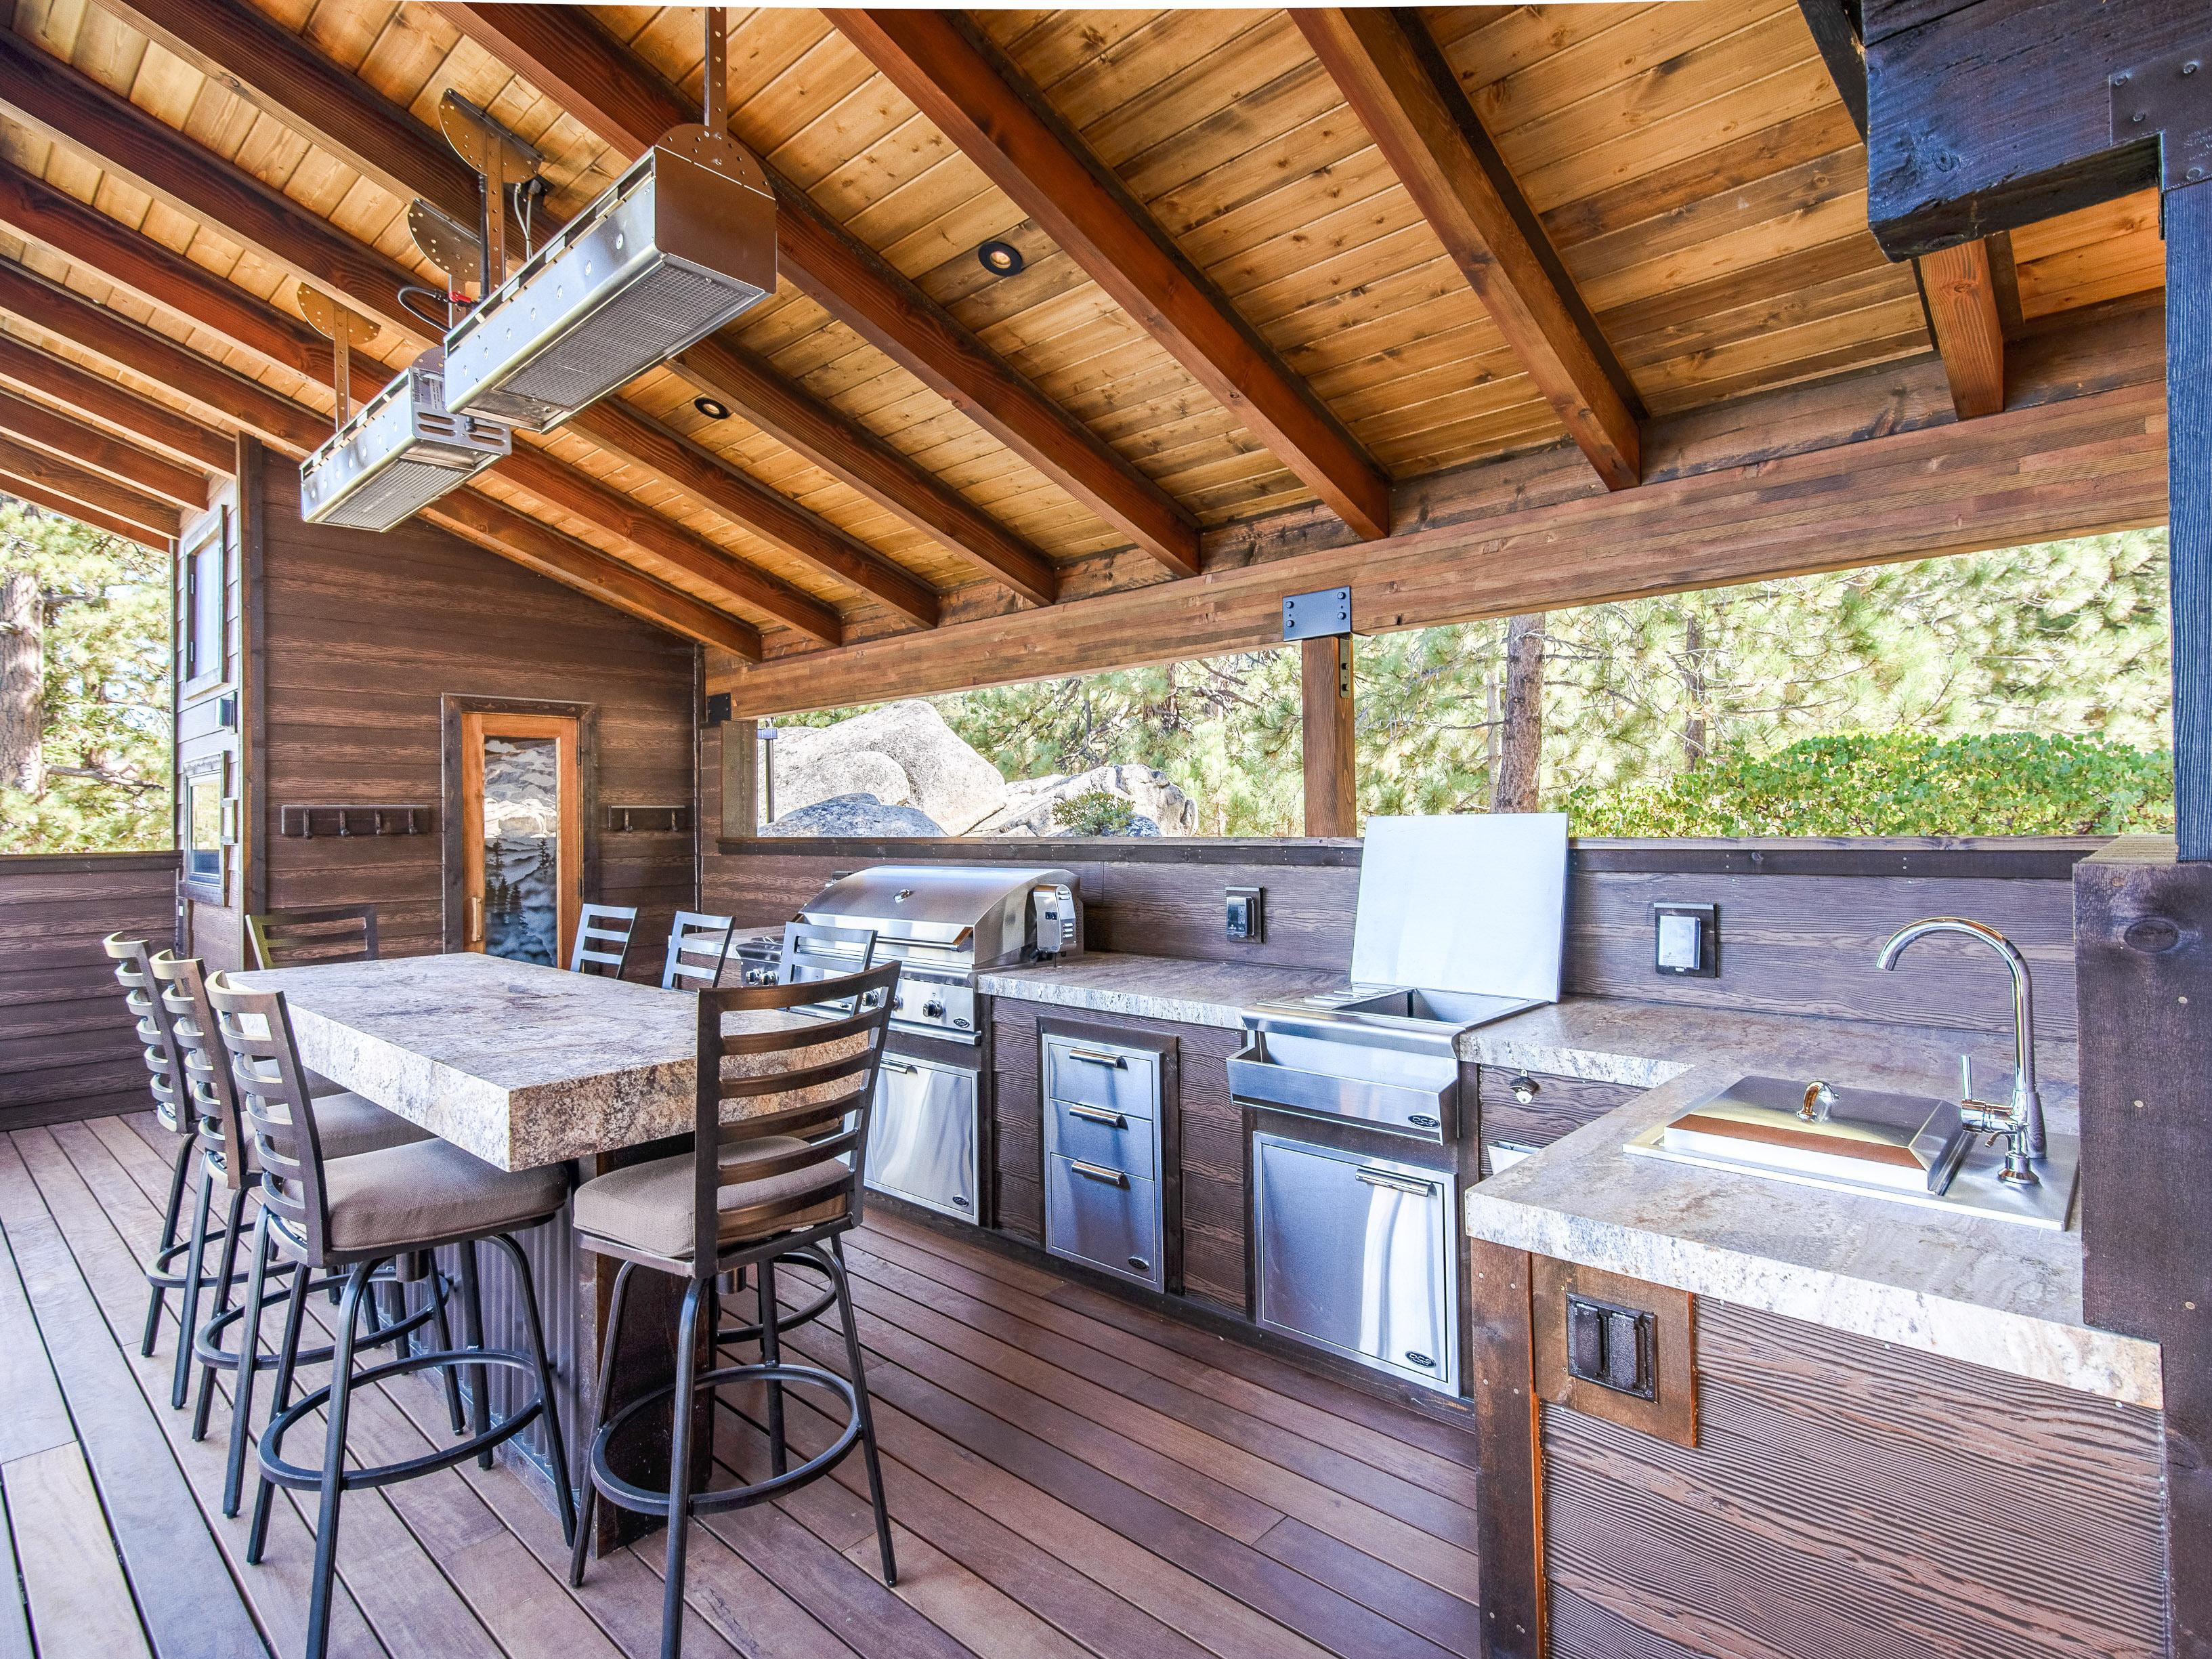 A full outdoor kitchen and 10-person granite table await on the deck.